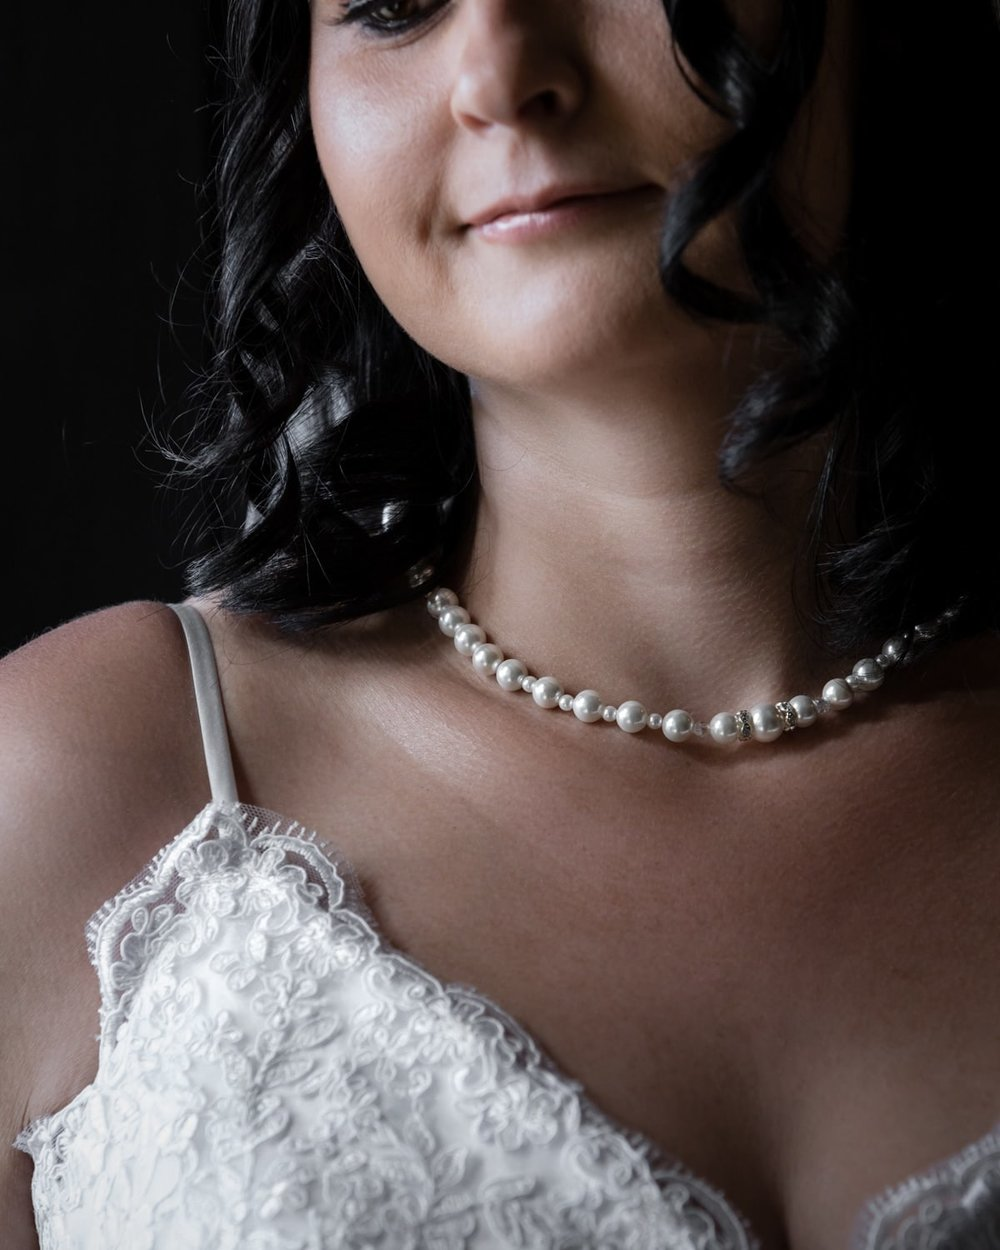 Portrait of bride wearing white wedding dress and wedding-day jewelry.